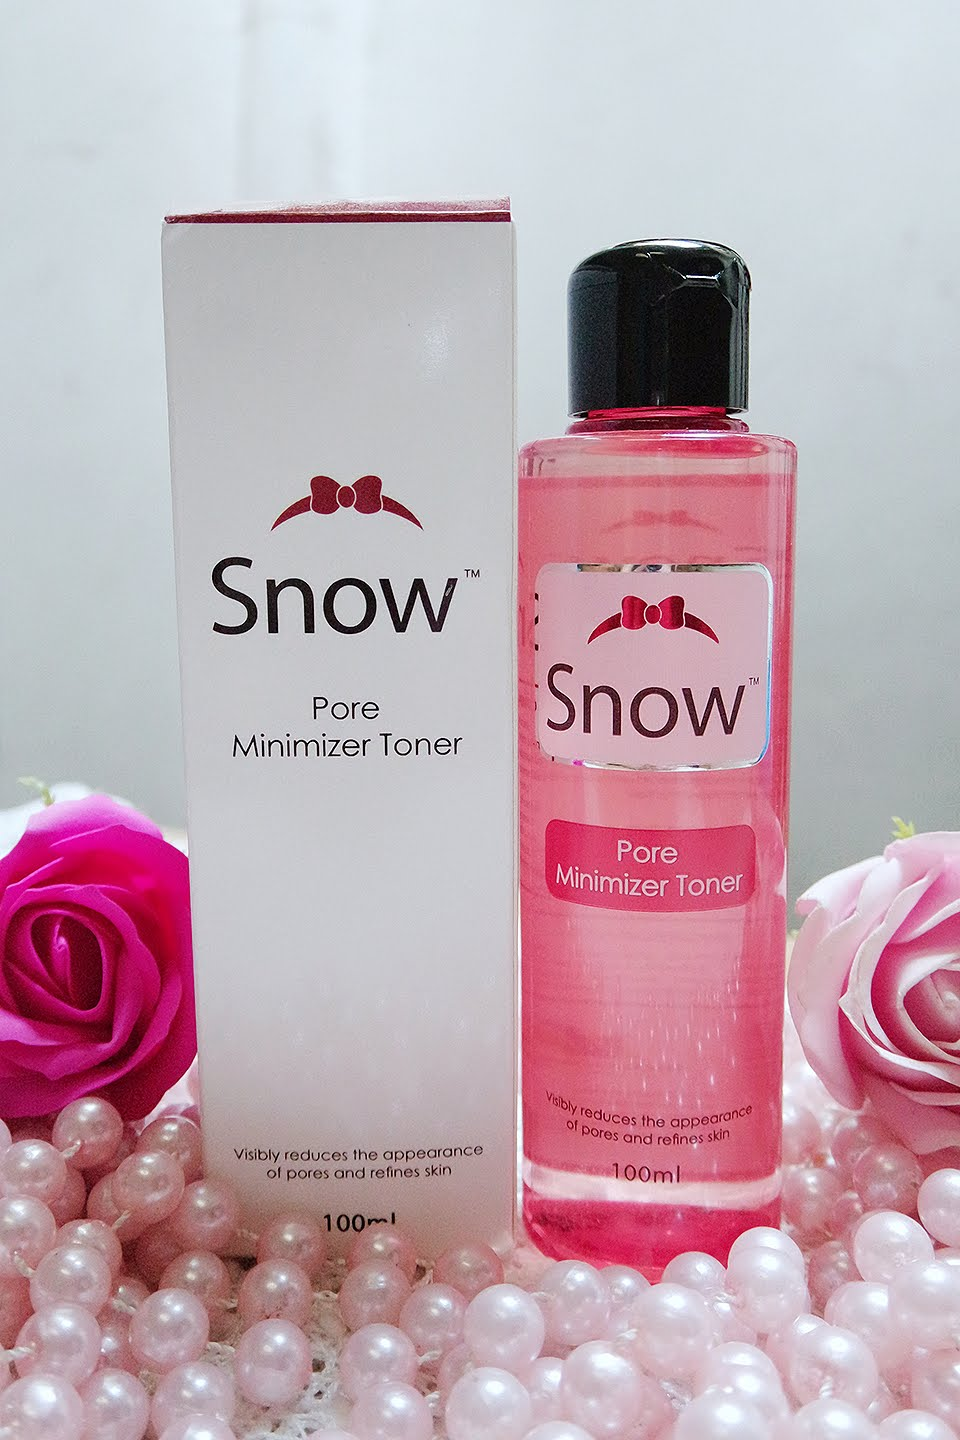 Review S Snow Pore Minimizer Toner Pinkislovebynix